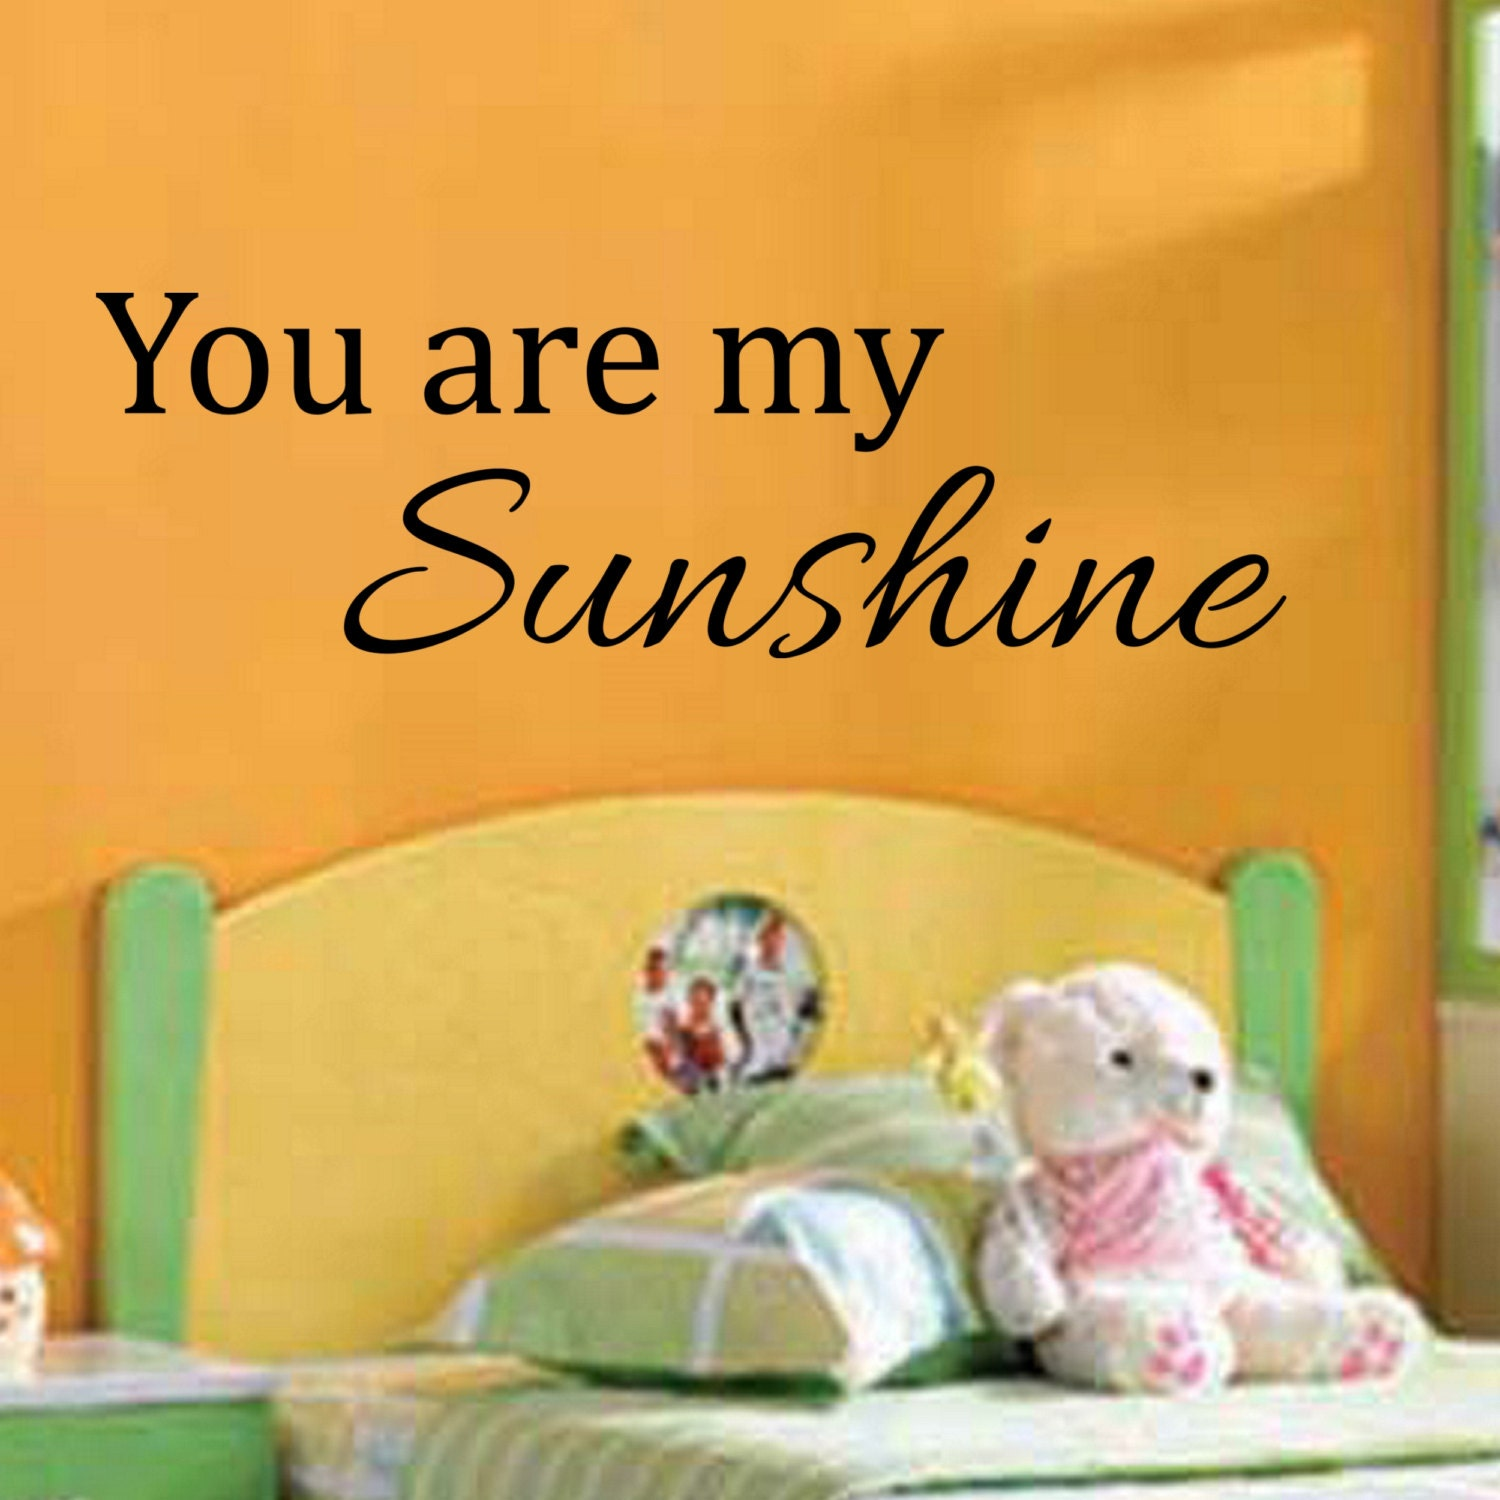 You are my Sunshine Decal Wall Vinyl Sticker Family Girls